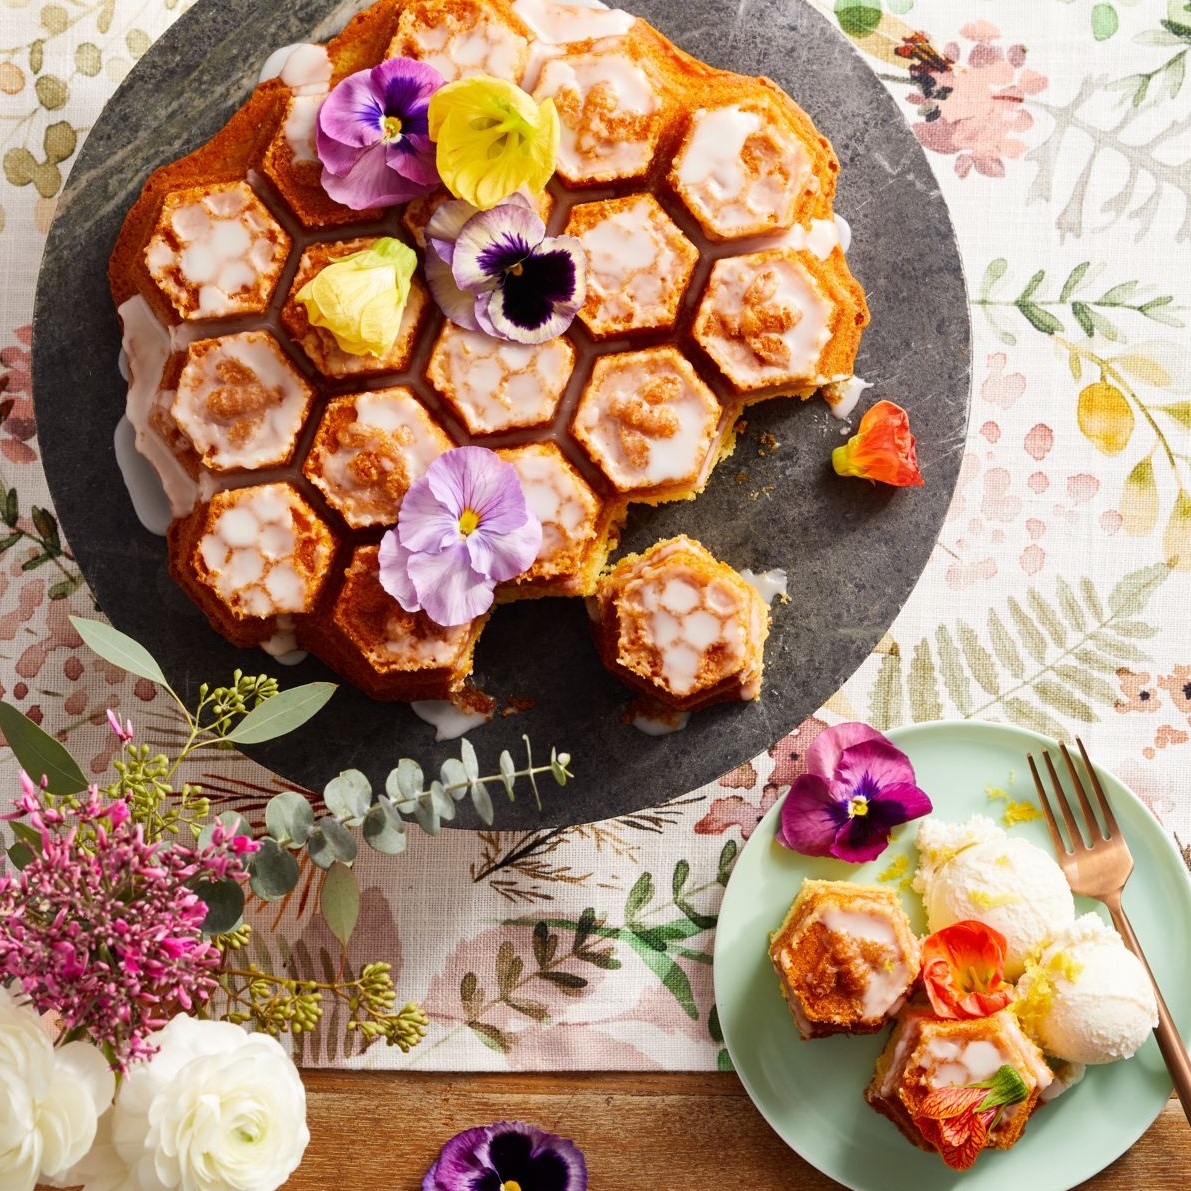 overhead view of apricot cake baked in honeycomb pattern cake pan and served with ice cream and edible flowers